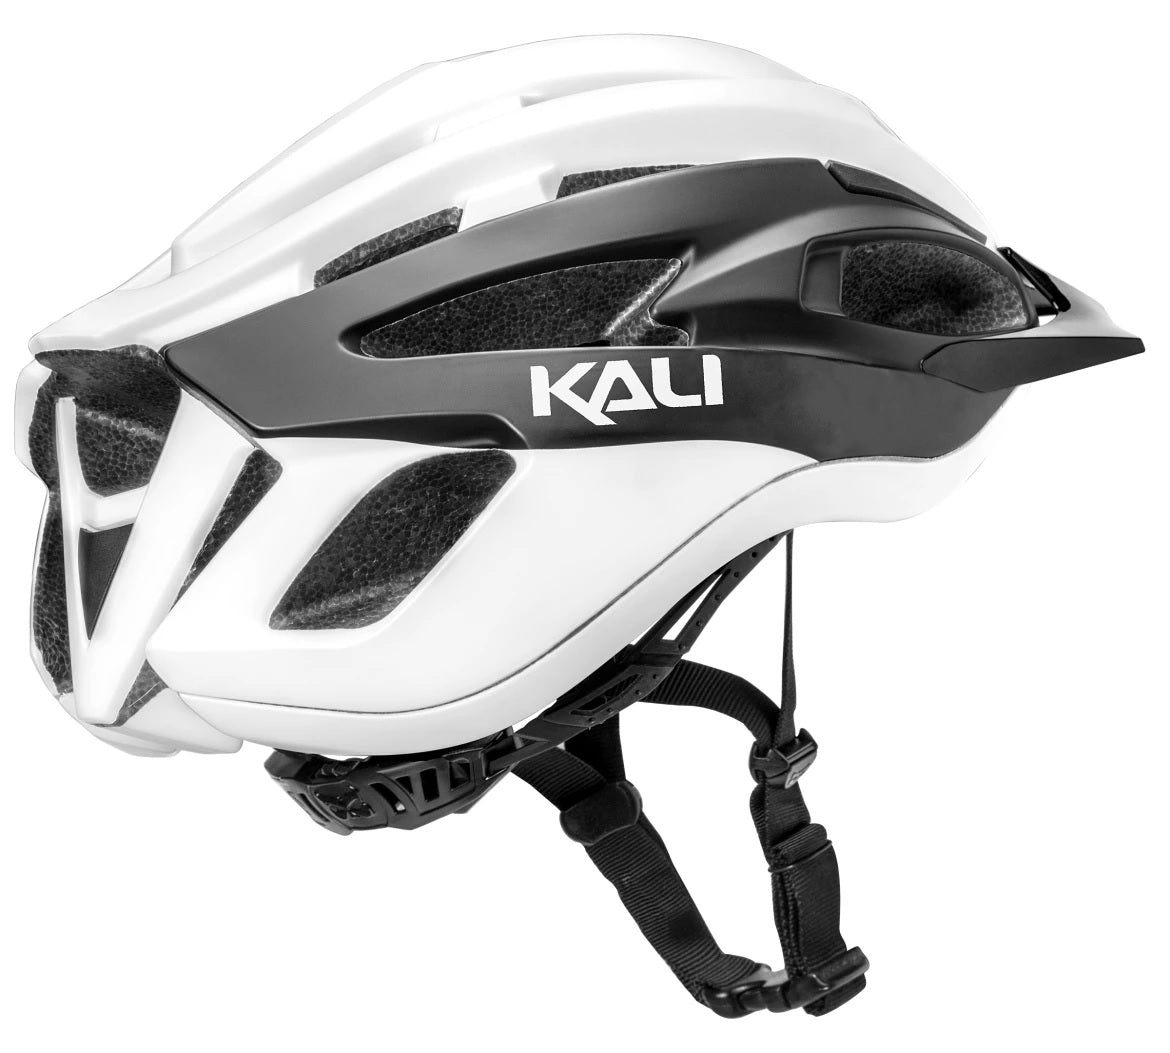 Alchemy Elevate by Kali Protectives